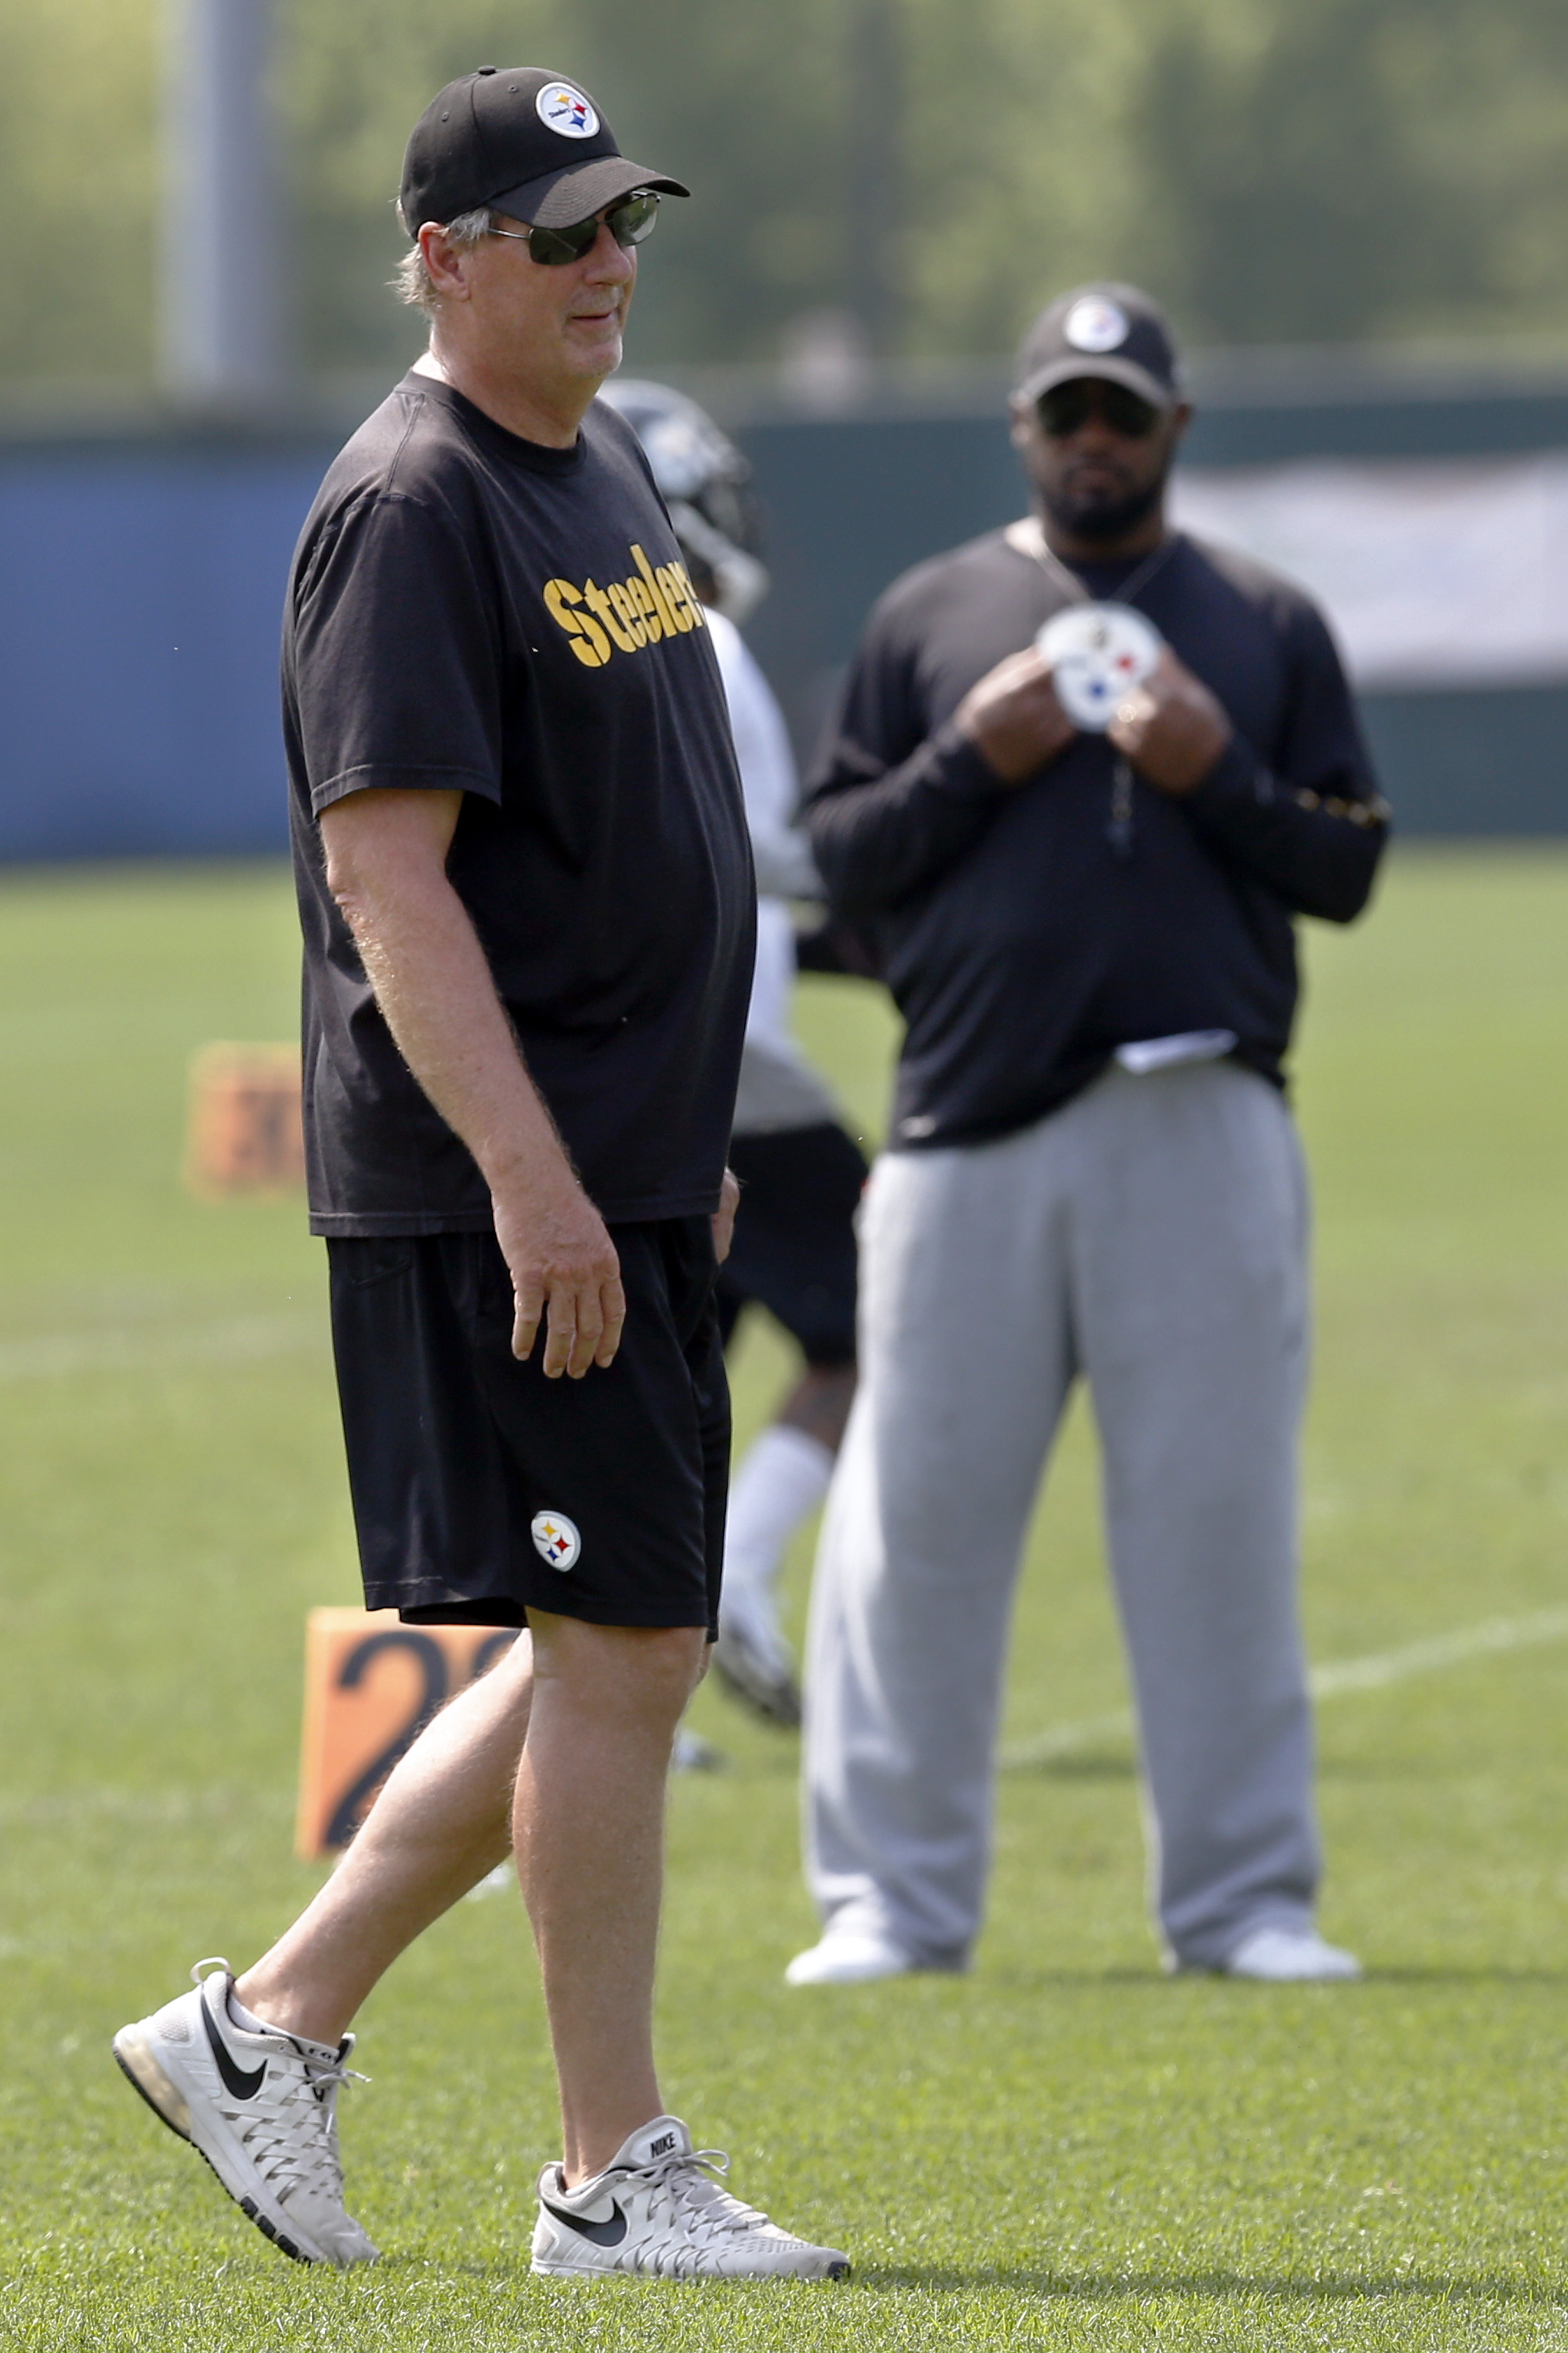 Pittsburgh Steelers defensive coordinator Keith Butler, left, walks past head coach Mike Tomlin as they watch the team go through drills during an NFL football organized team activity, Thursday, June 11, 2015 in Pittsburgh. Butler, the longtime linebacker